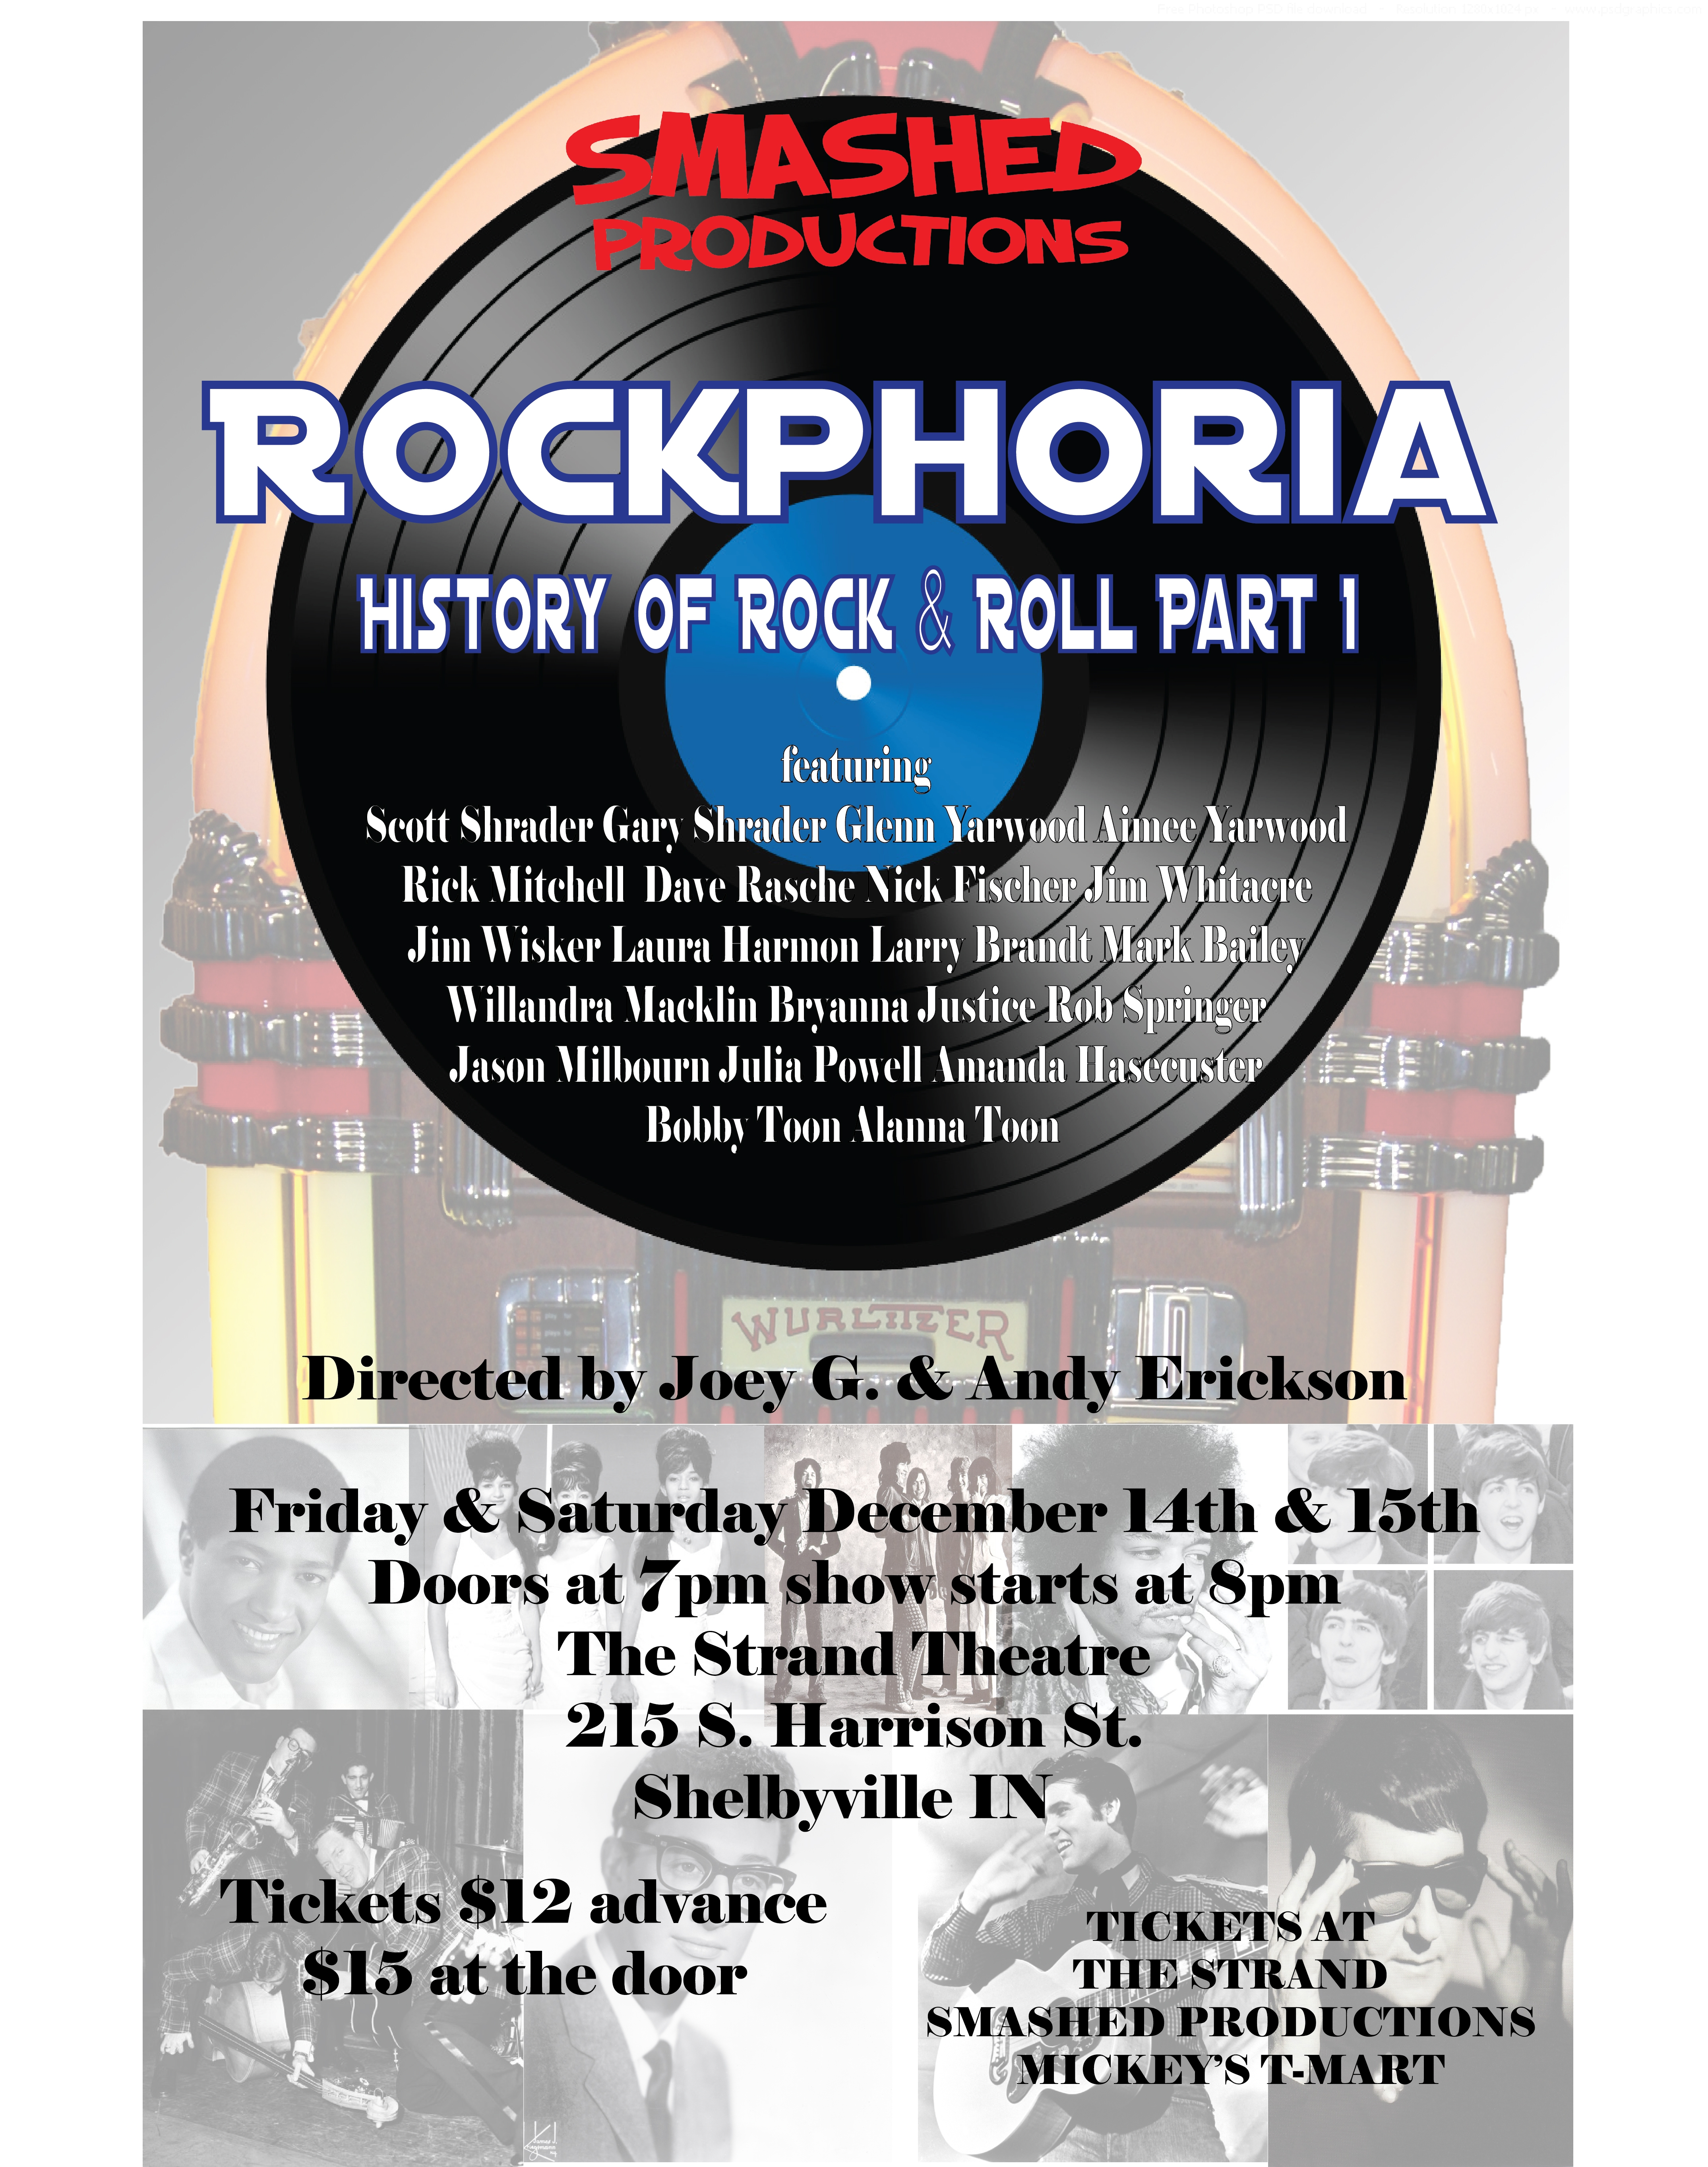 Rockphoria - History of Rock and Roll Part 1